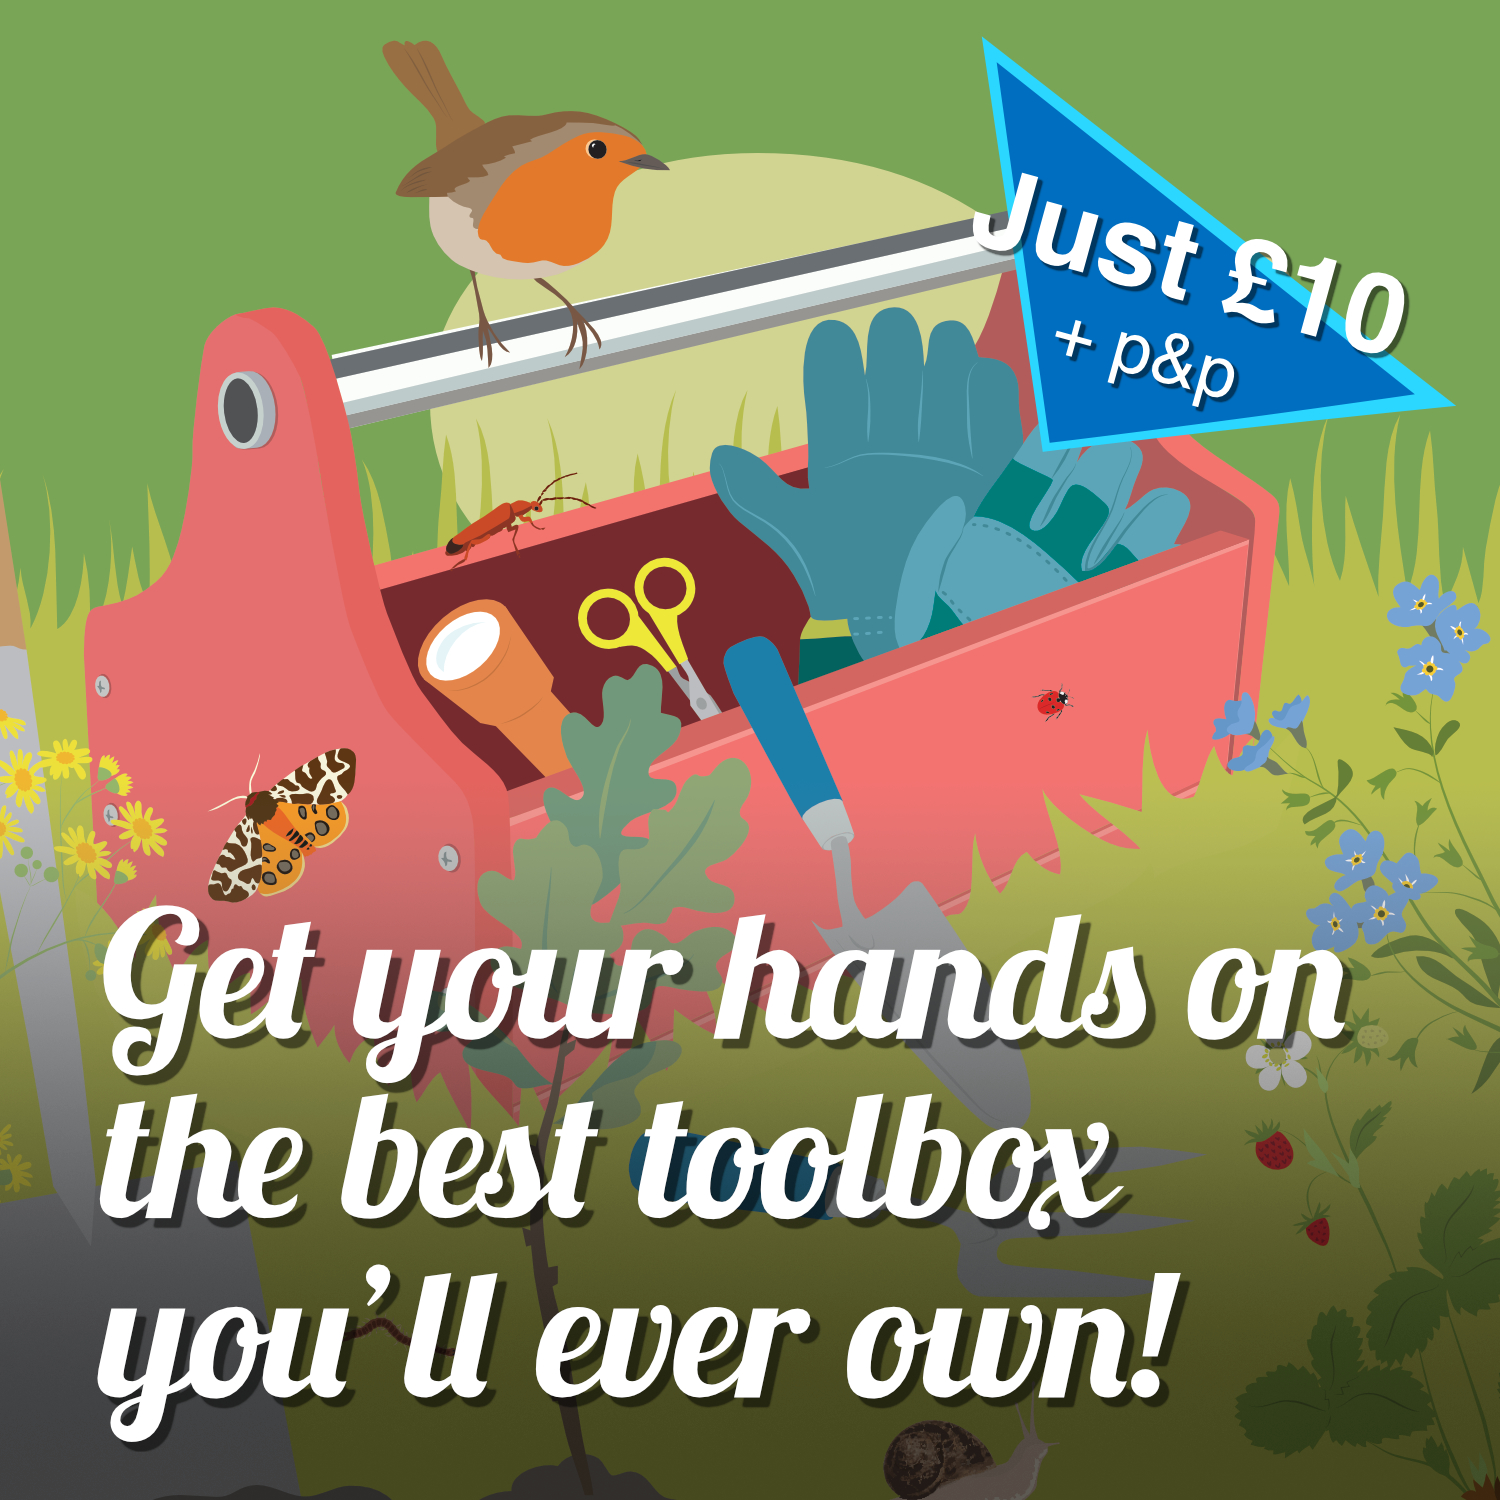 illustration of a toolbox surrounded by wildlife. Advert for new guidebook.